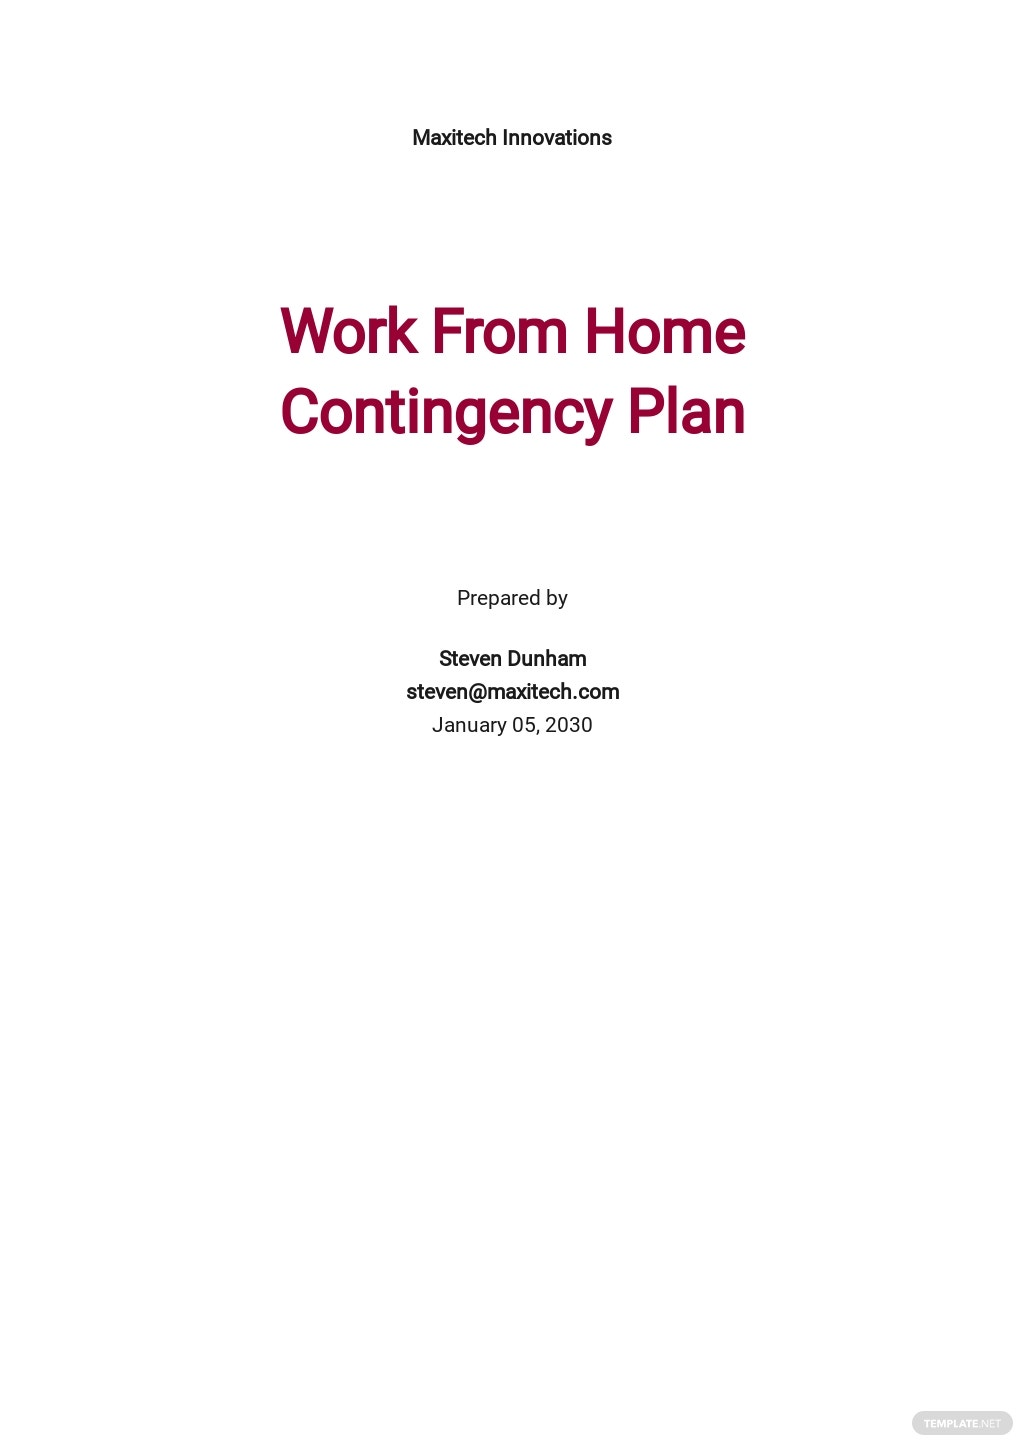 Work From Home Contingency Plan Template.jpe